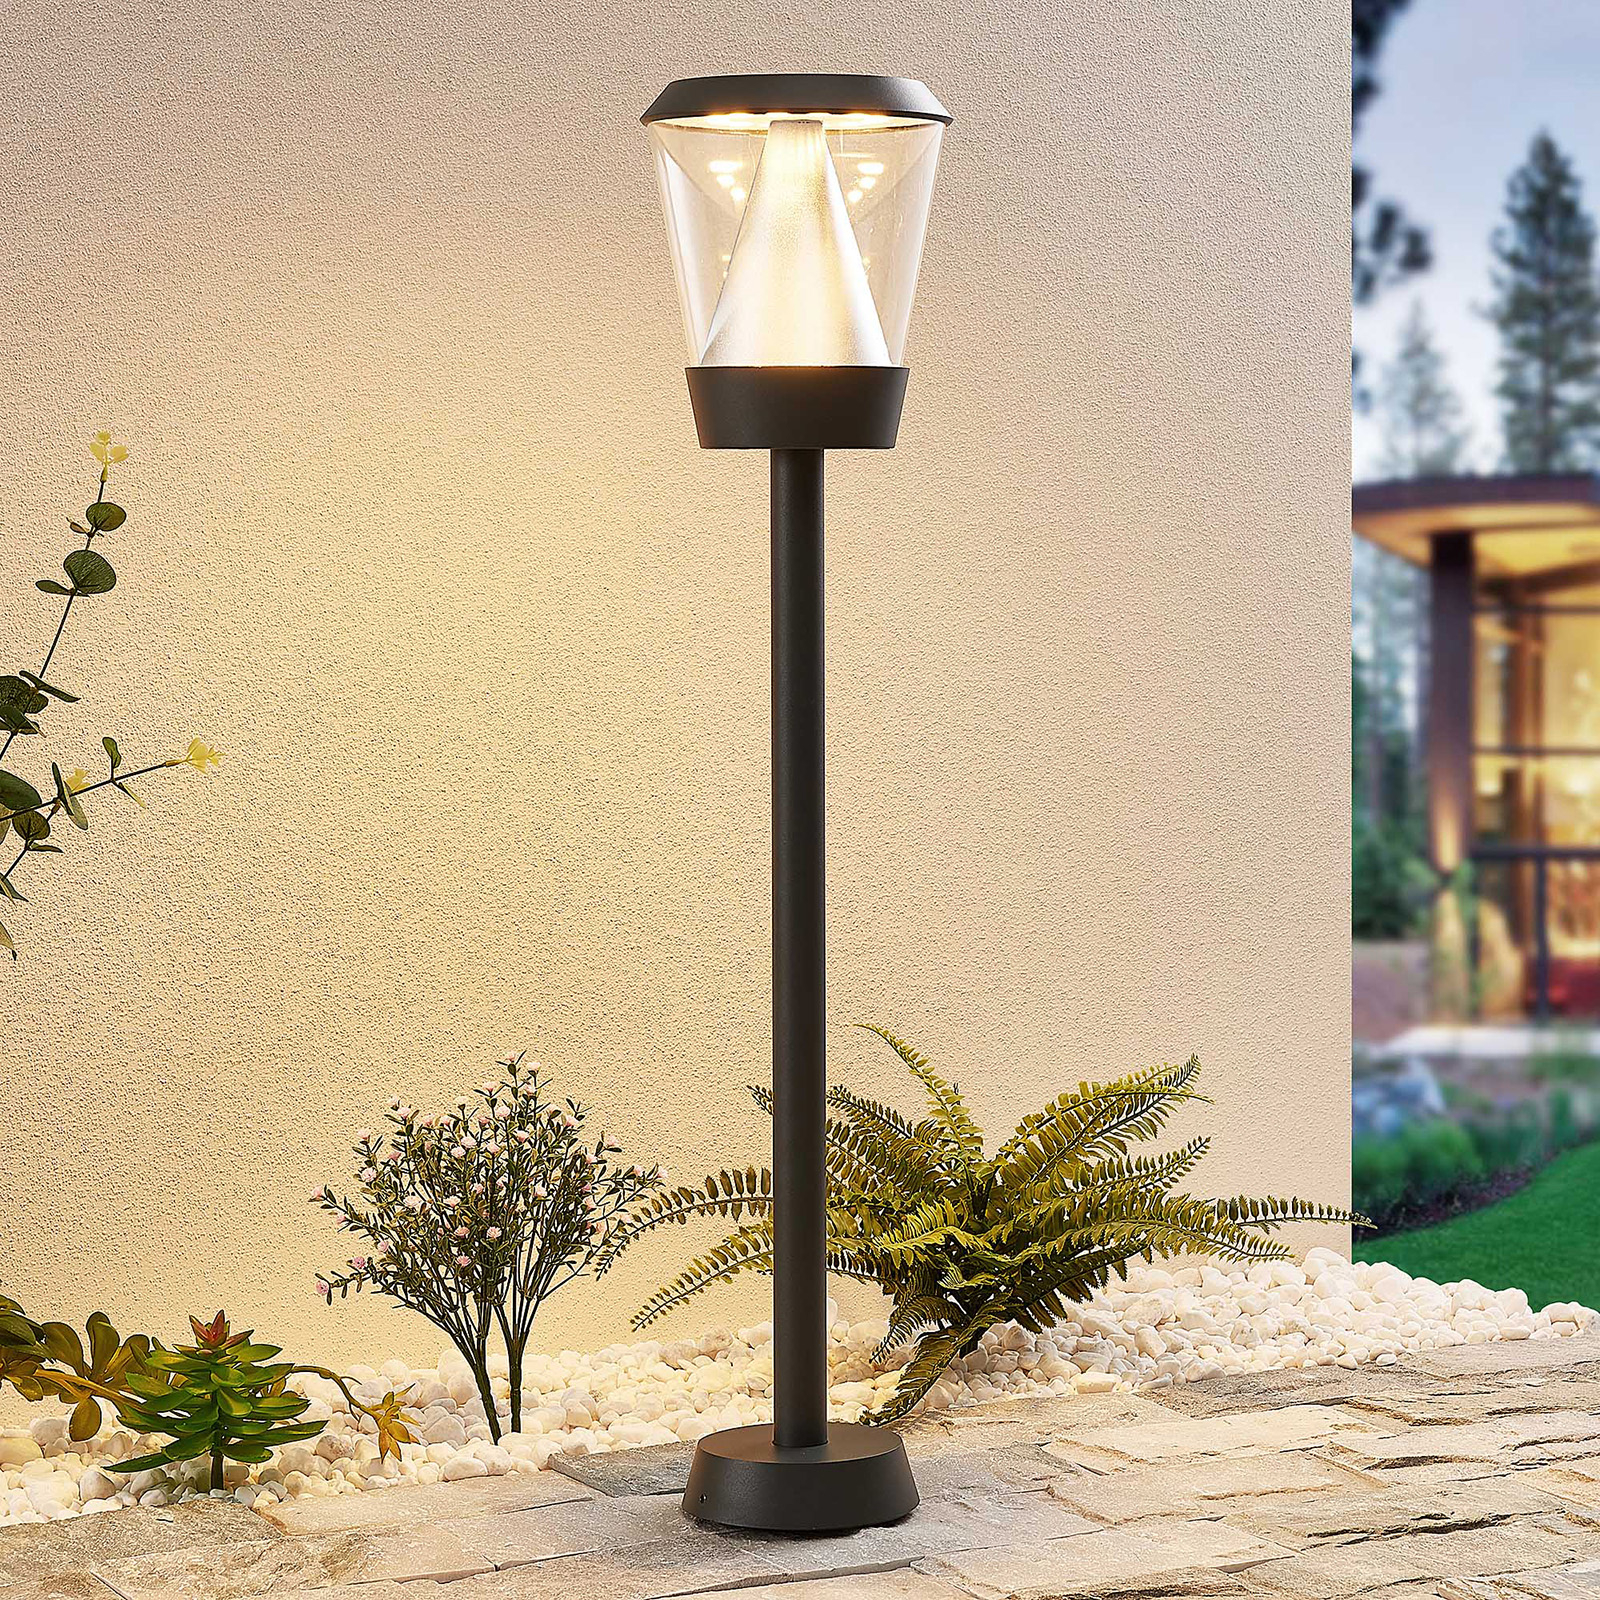 Lucande Tiany LED tuinpadverlichting, 80 cm